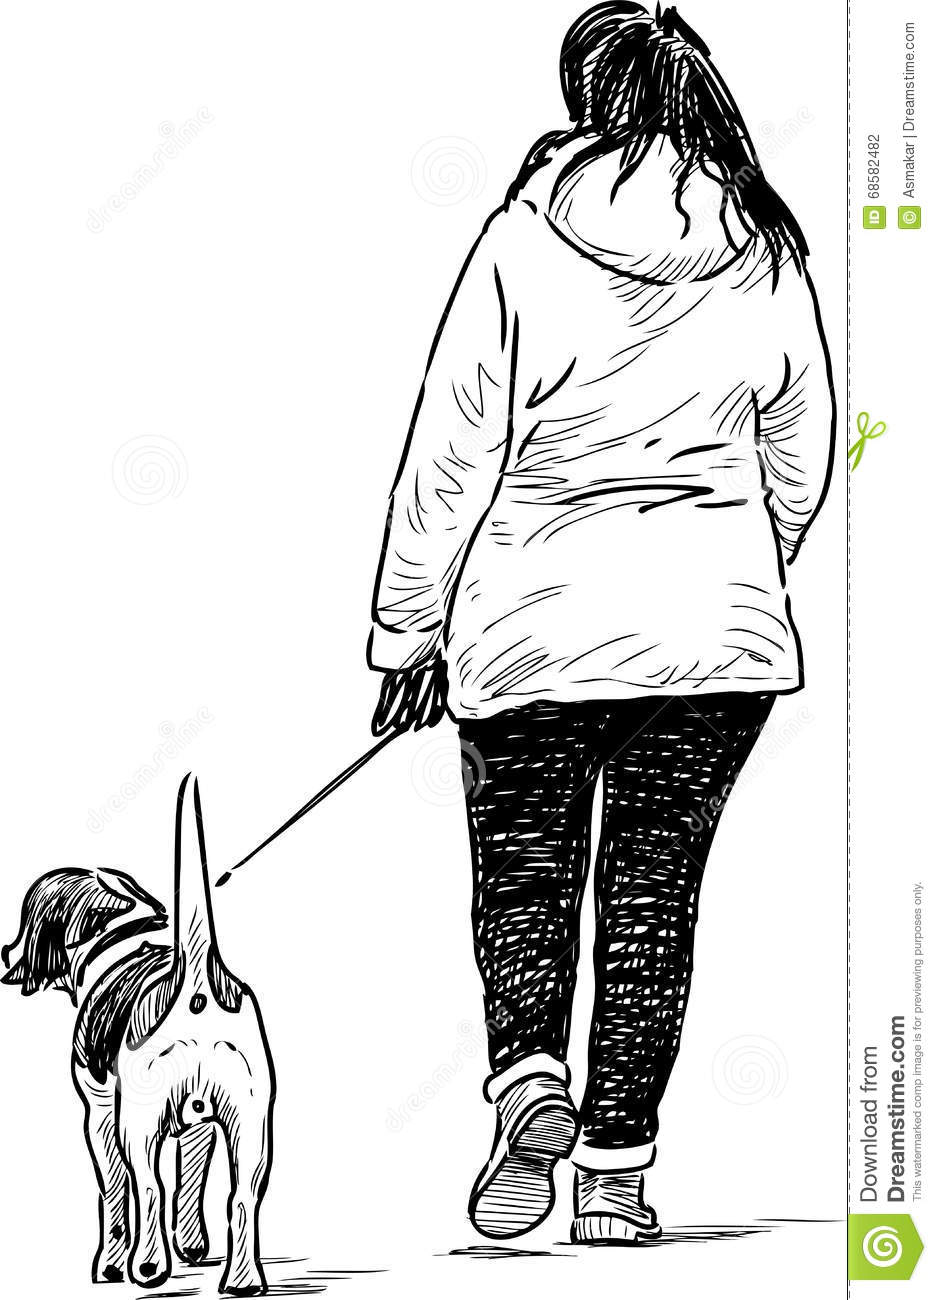 Girl With Her Pet On A Strol Stock Vector - Illustration of casual ... 194f33a8a4